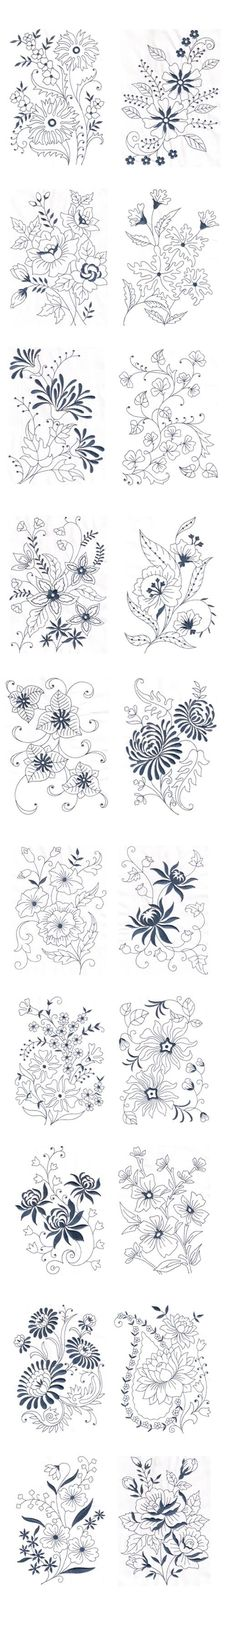 Amazing Emotions - Vintage Florals 01    Machine Embroidery Designs --- Vintage Florals 01 These fabulous vintage floral designs can add supreme beauty to your products like bed linen bath linen kitchen linen curtains and even dresses. You can notice the variety in the floral designs    For more details visit https://ift.tt/2CQSTmB